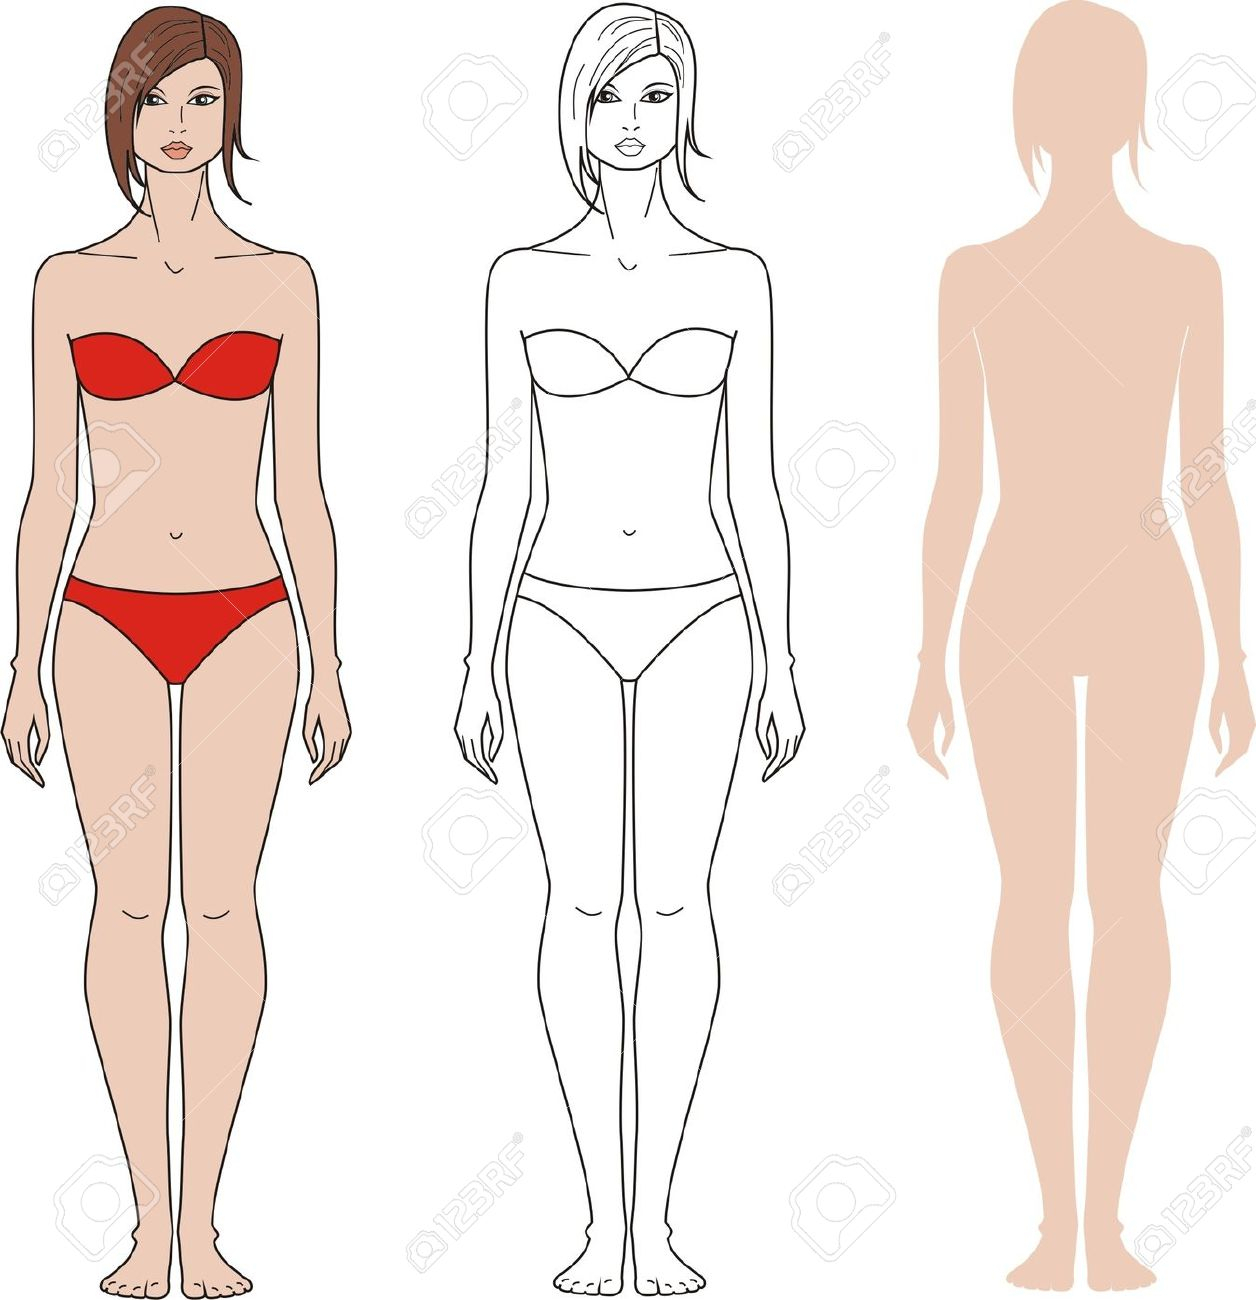 Body clipart woman, Body woman Transparent FREE for download.